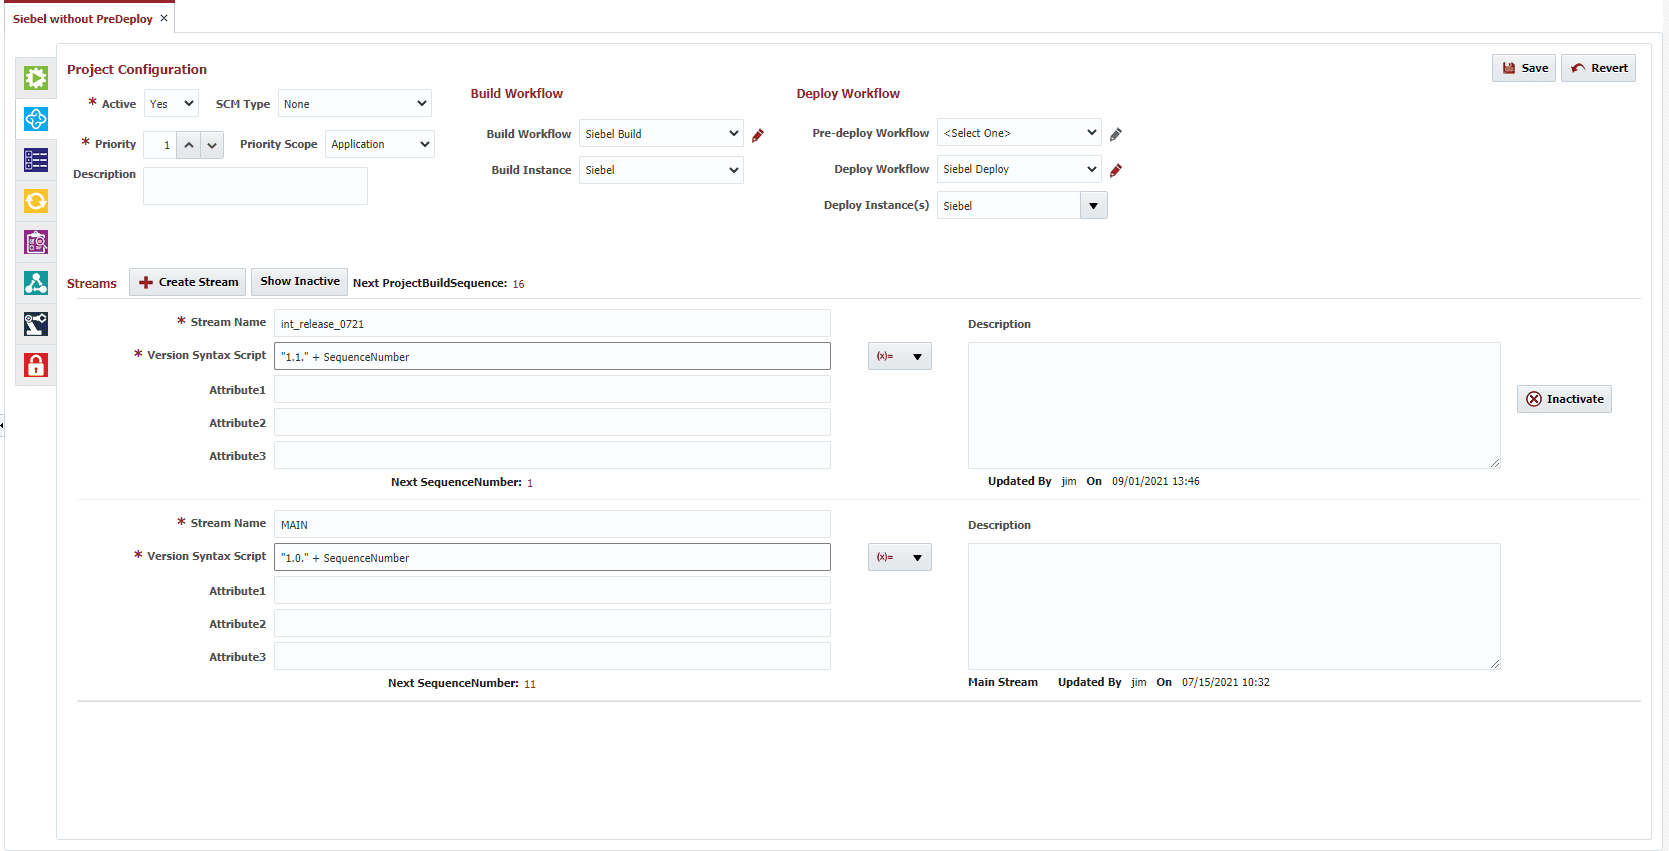 Project Configuration window for build and deploy workflows for Siebel